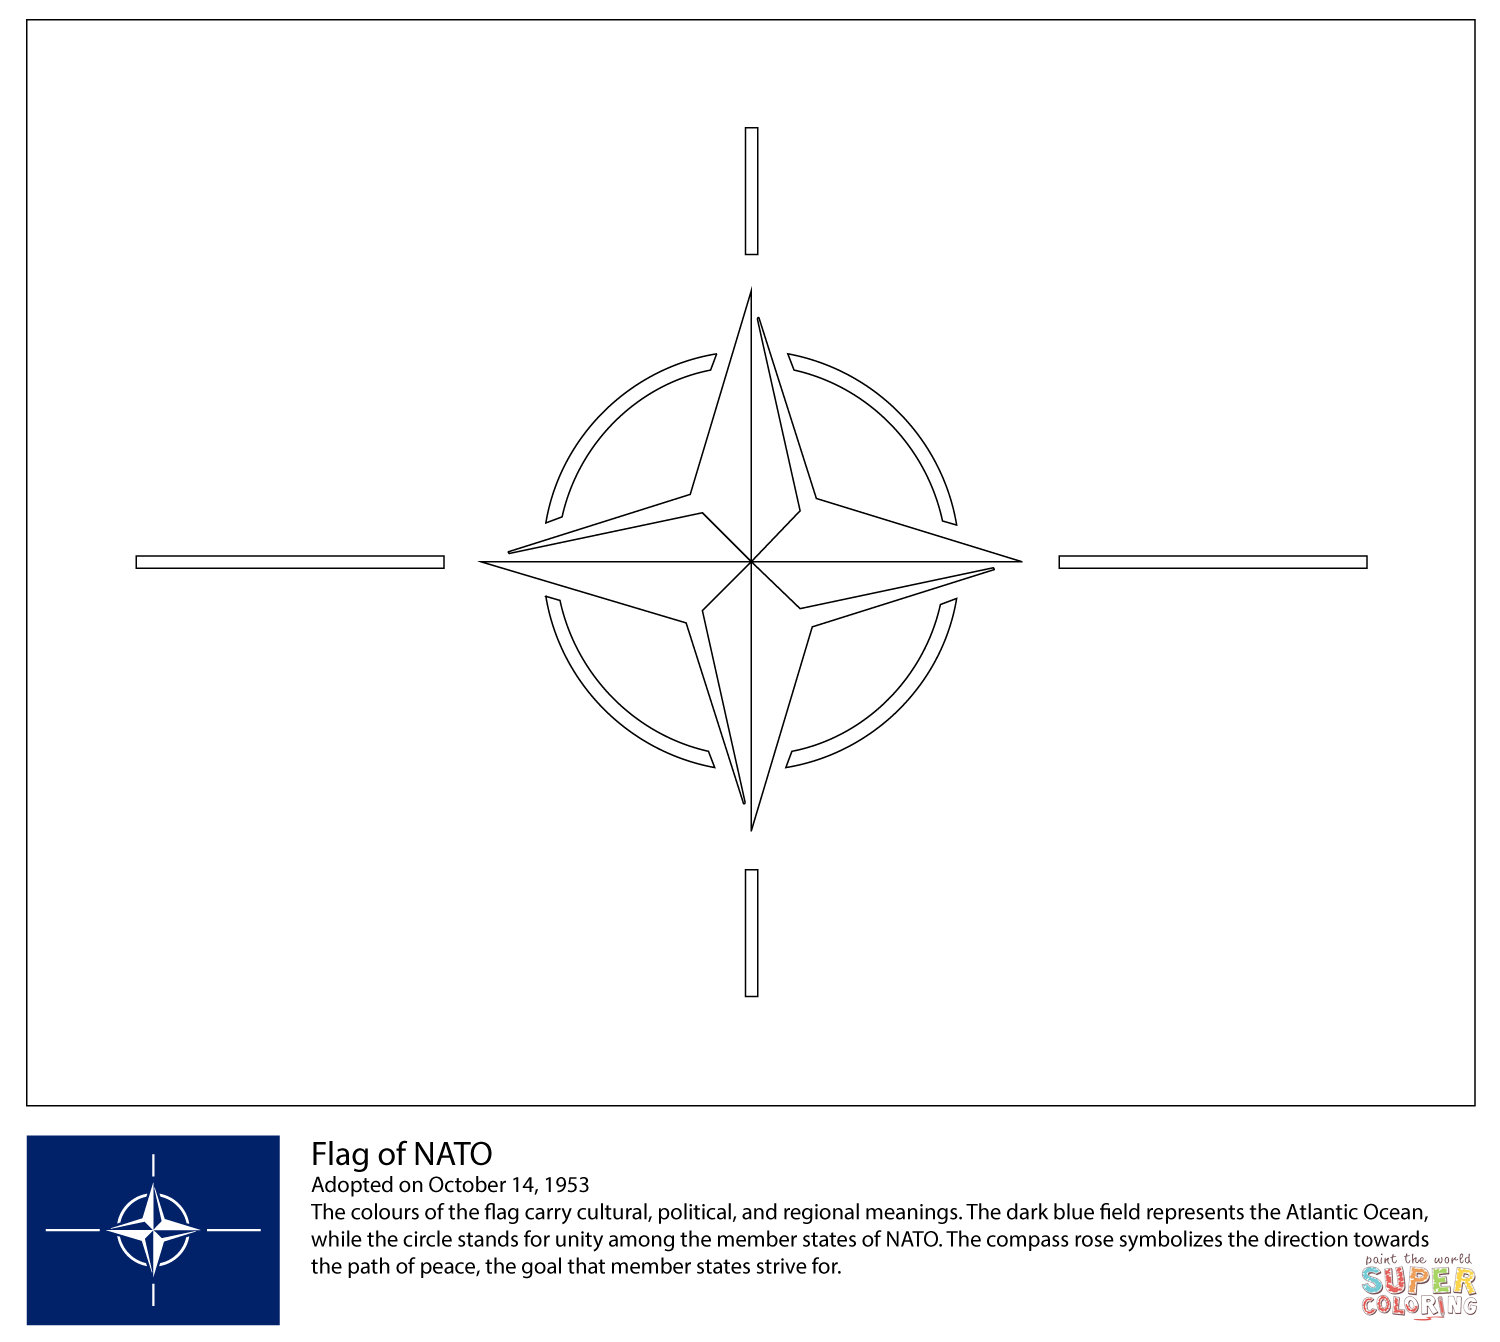 Flags Of The World Coloring Pages | Free Coloring Pages - Free Printable Flags From Around The World